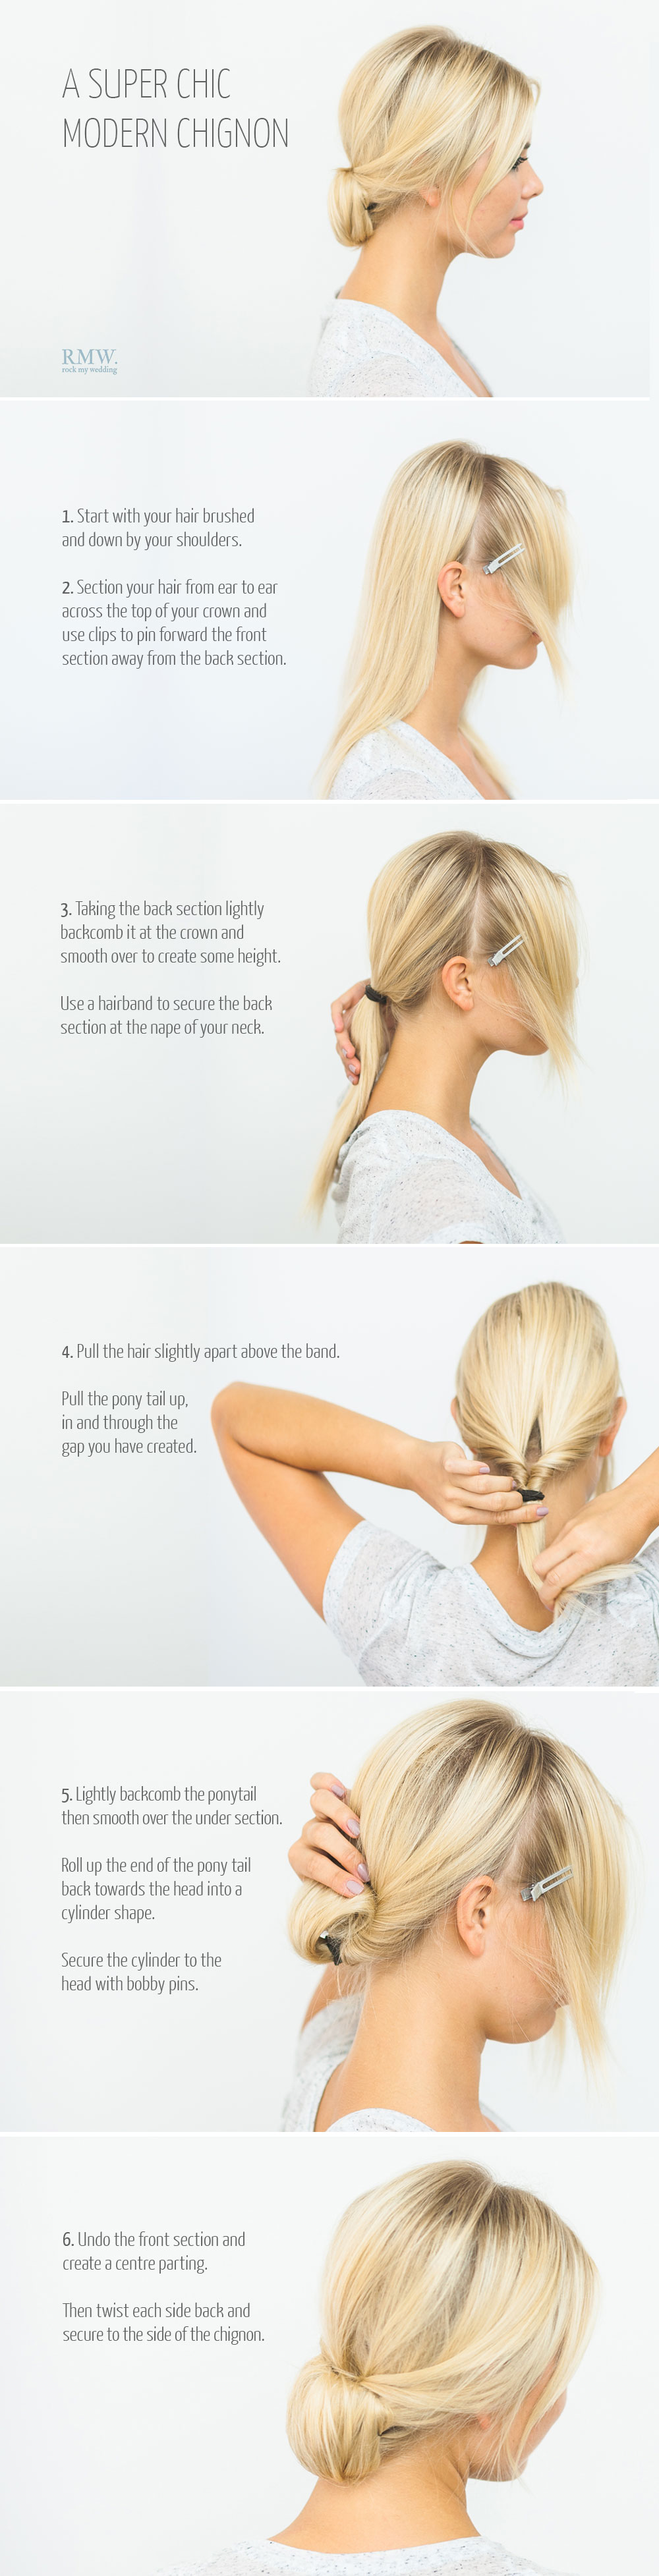 DIY Chignon hair style how to